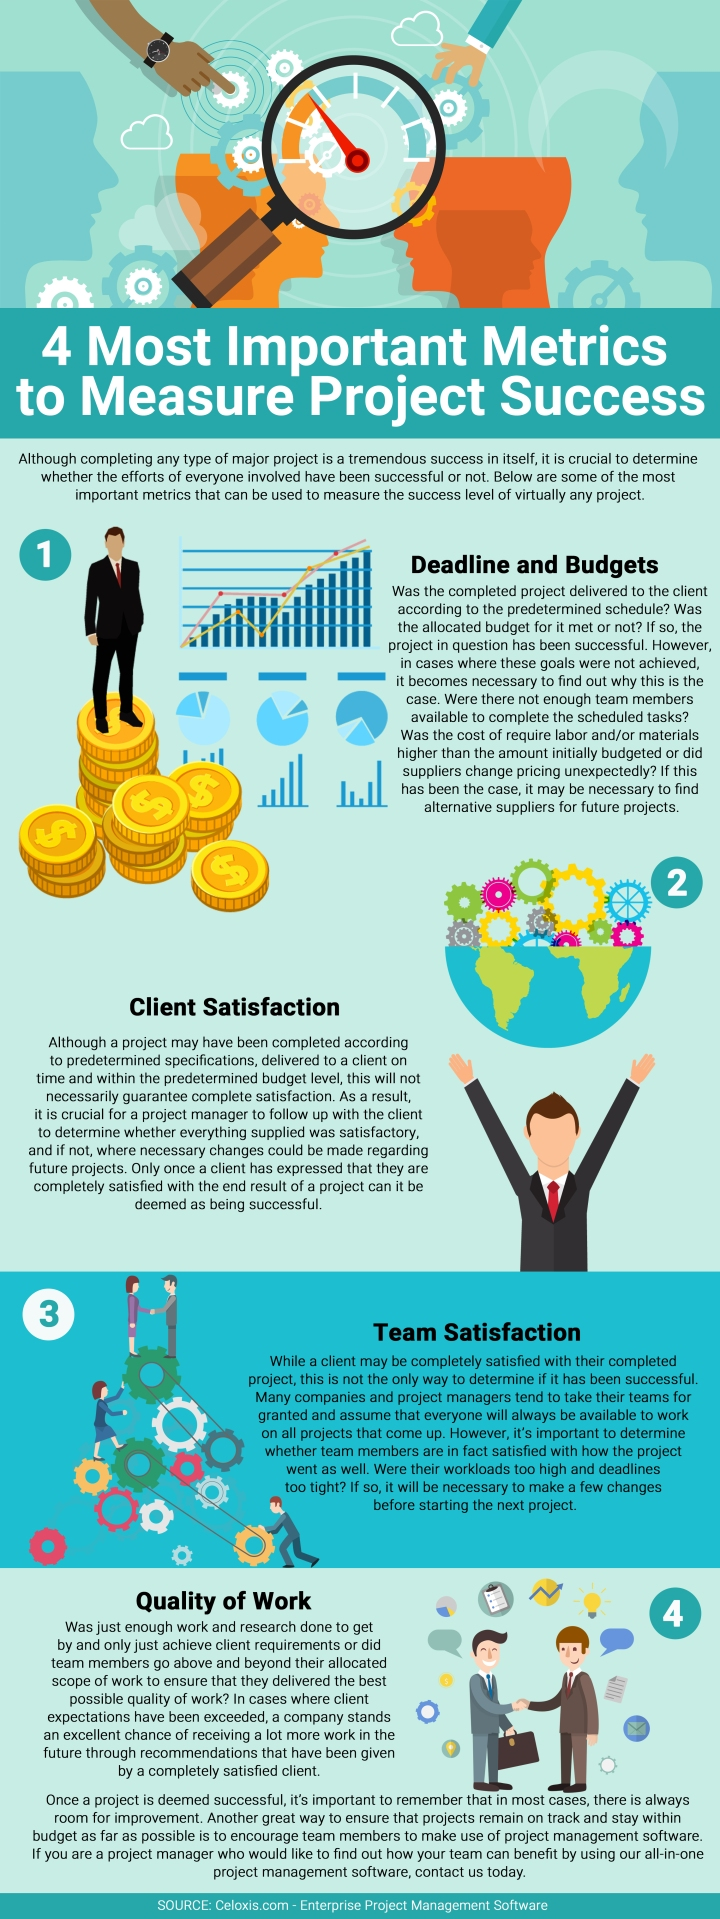 INFOGRAPHIC: 4 Most Important Metrics to Measure Project Success